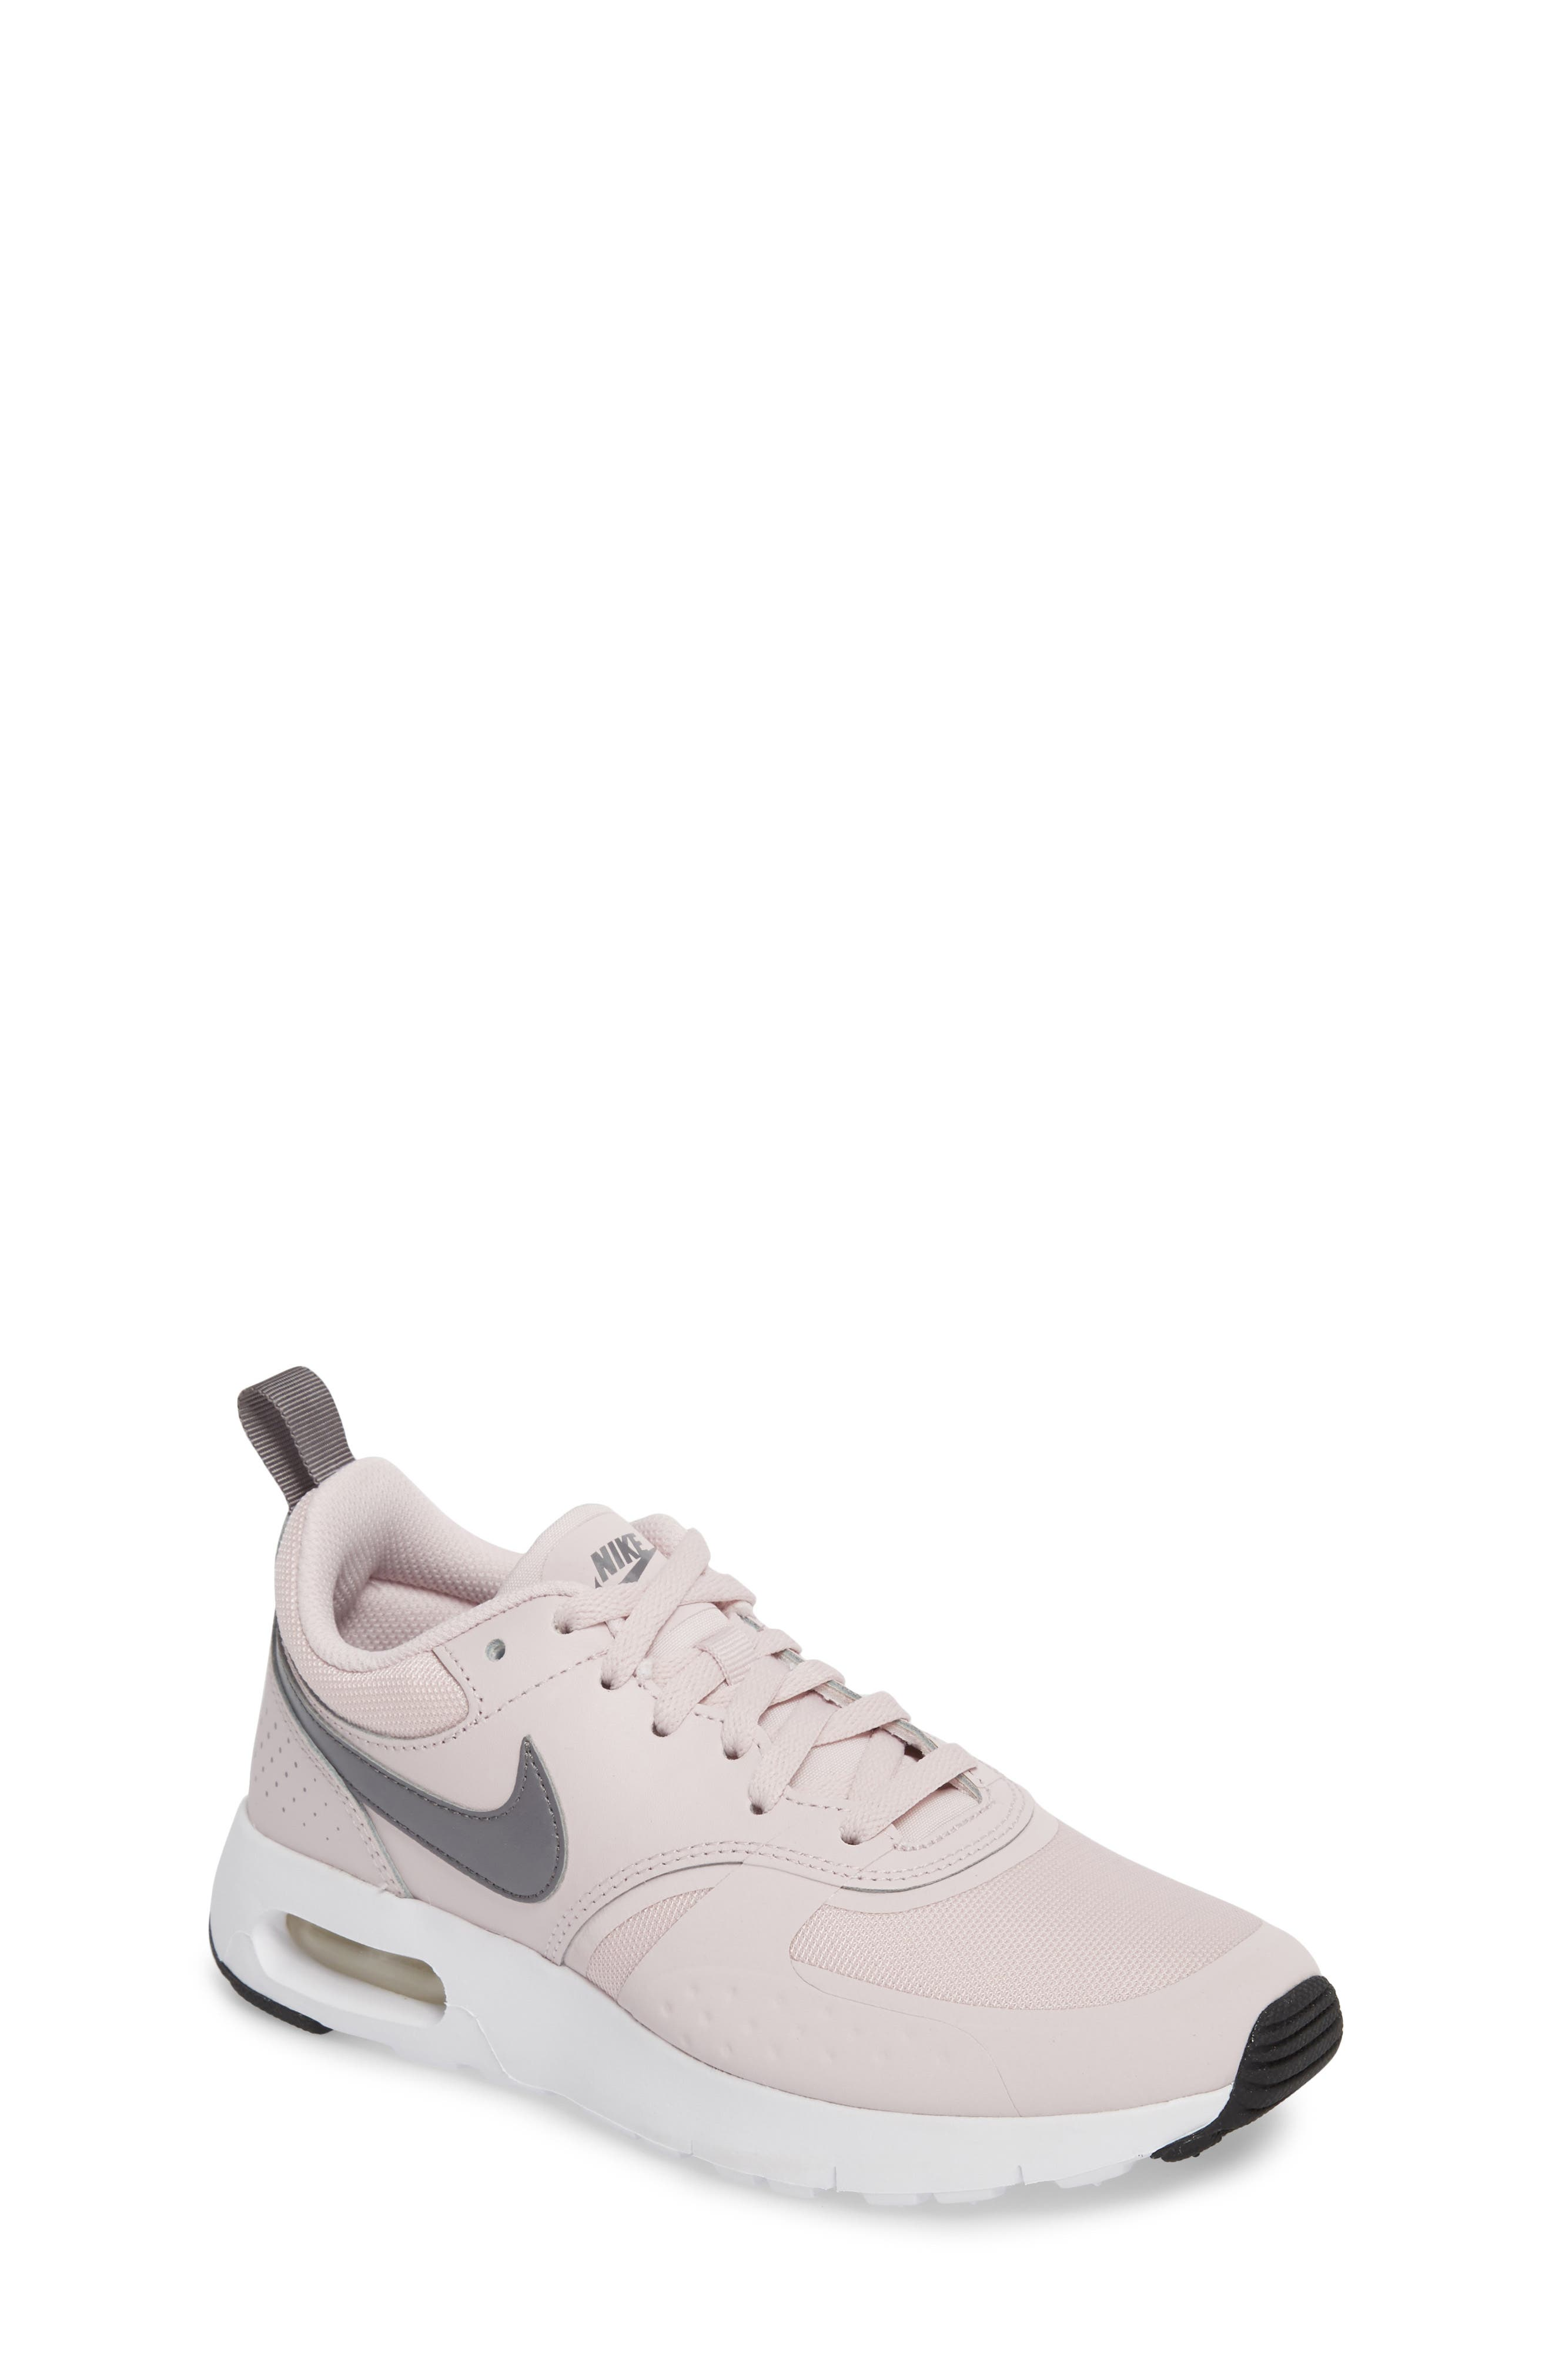 Air Max Vision Sneaker,                         Main,                         color, Barely Rose/ Smoke/ White